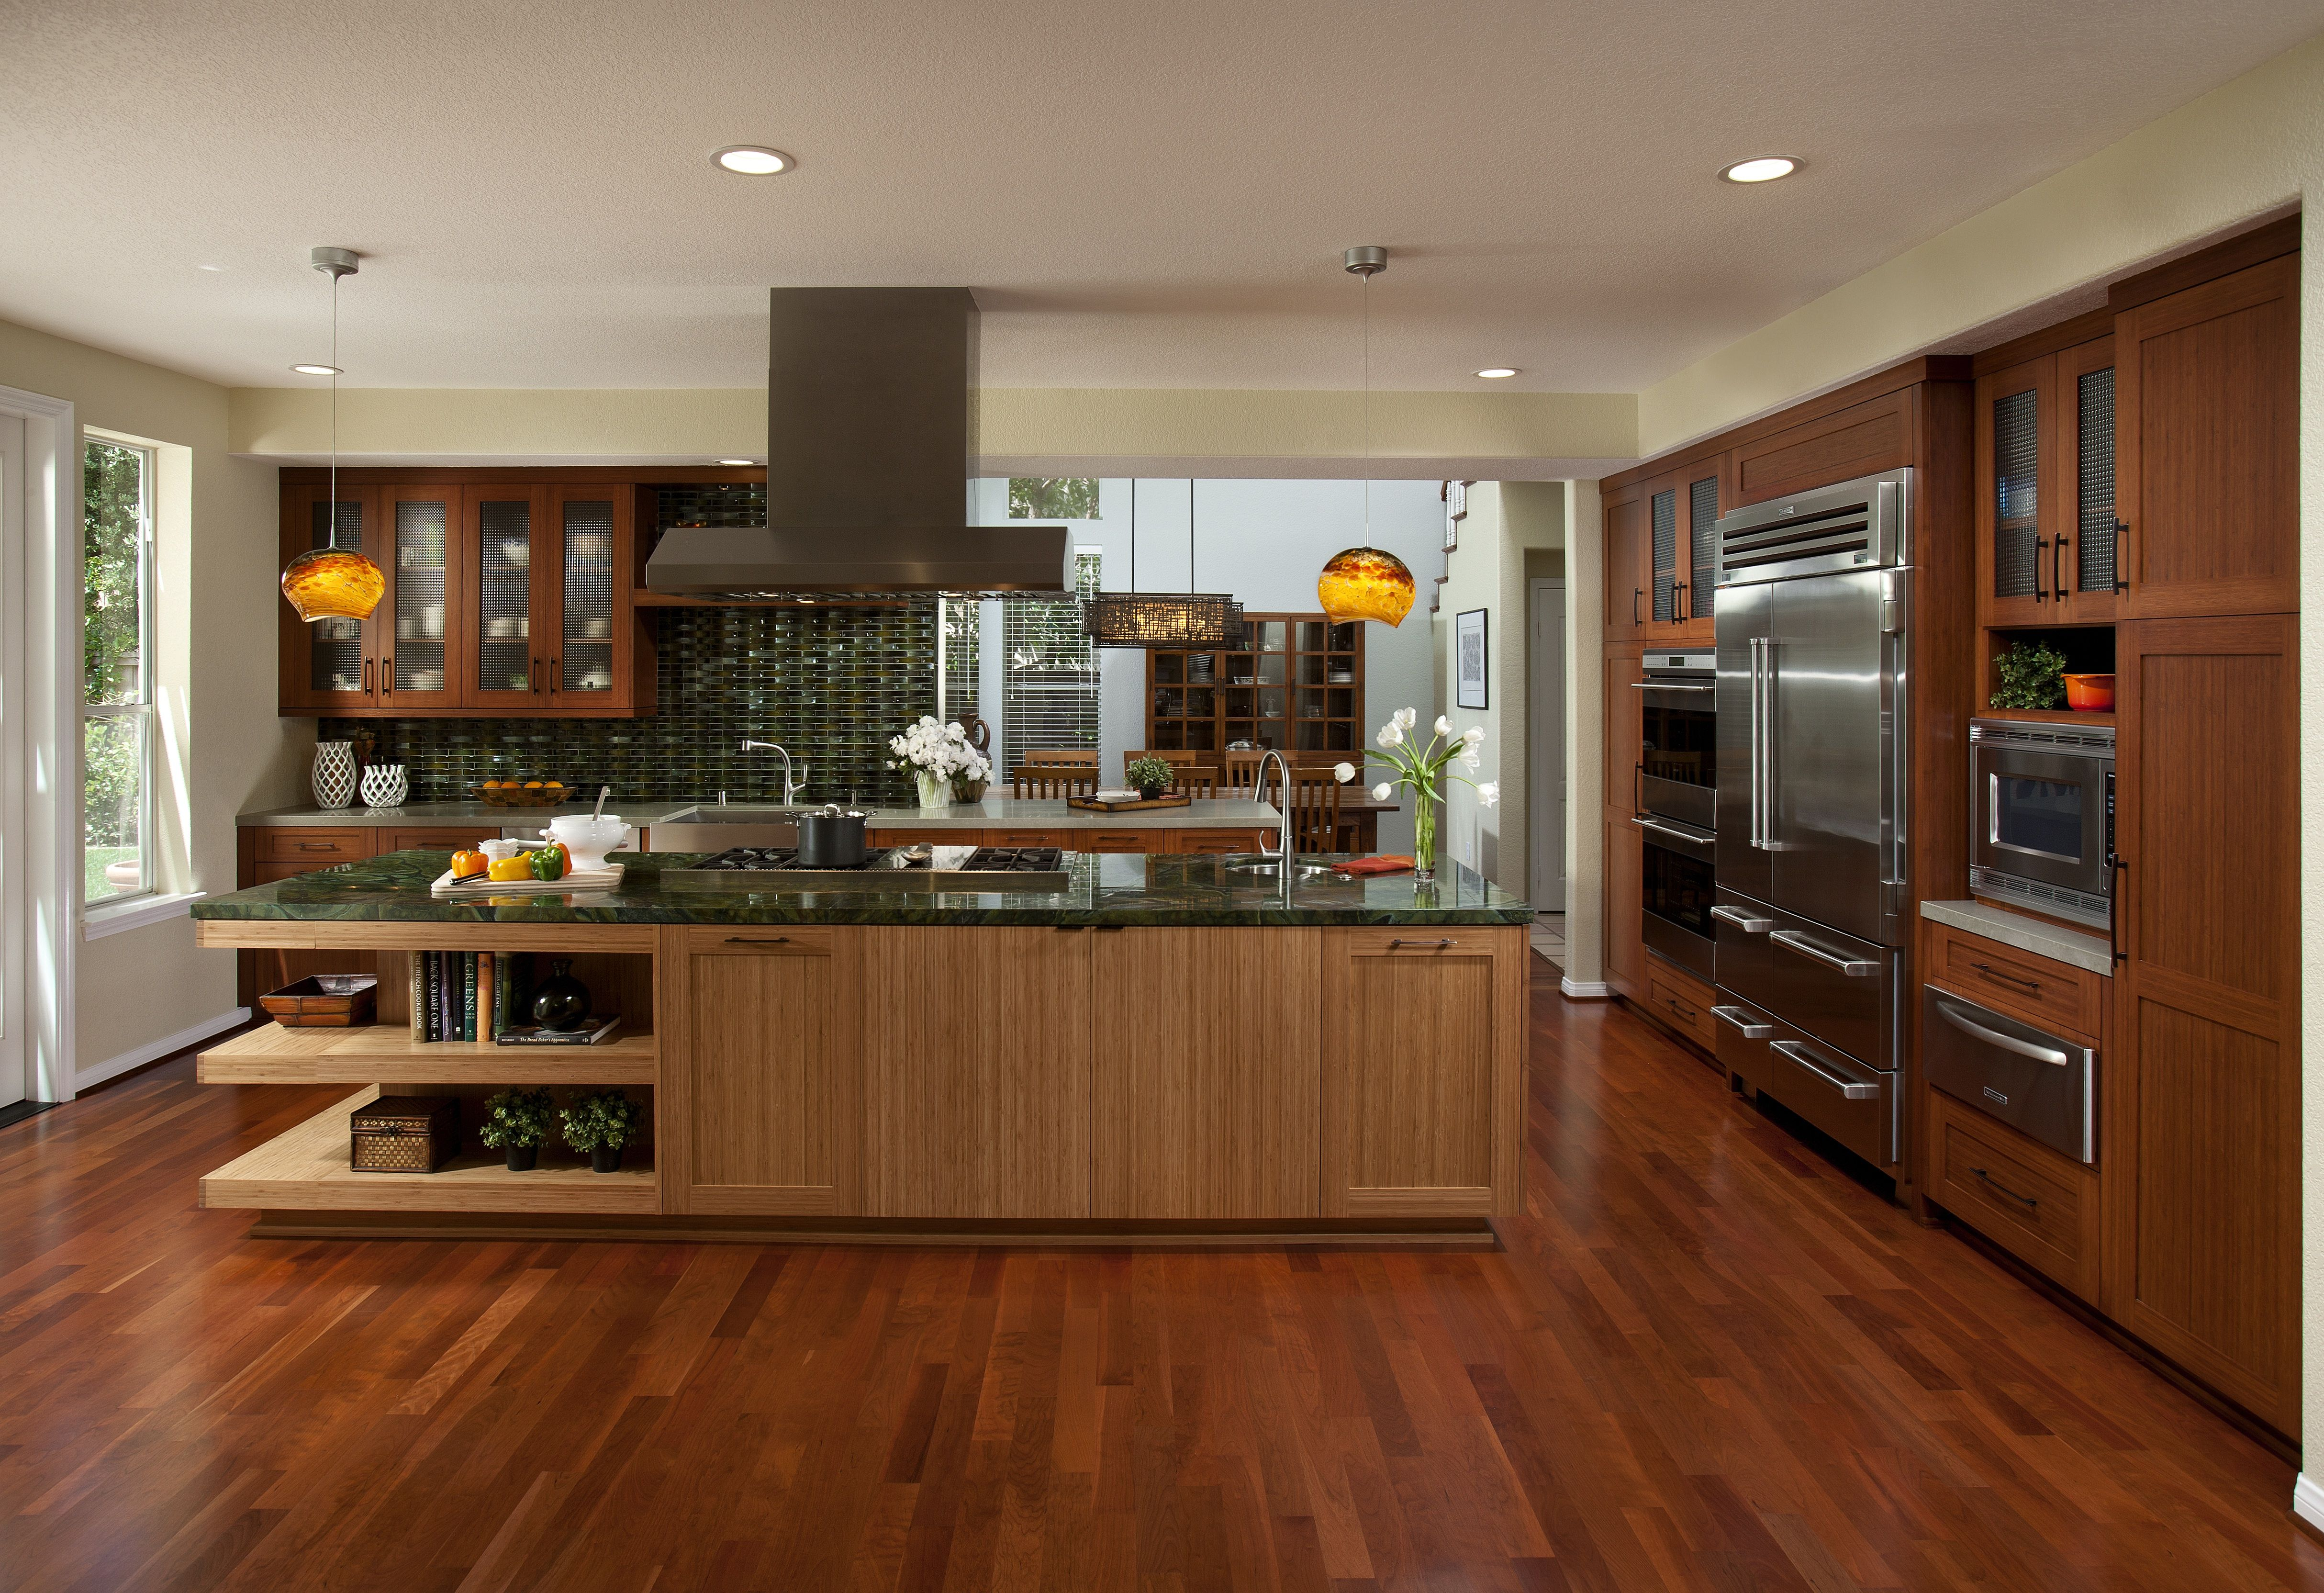 Best Combo Of Light Dark Bamboo I Think So Bamboo Cabinets 640 x 480